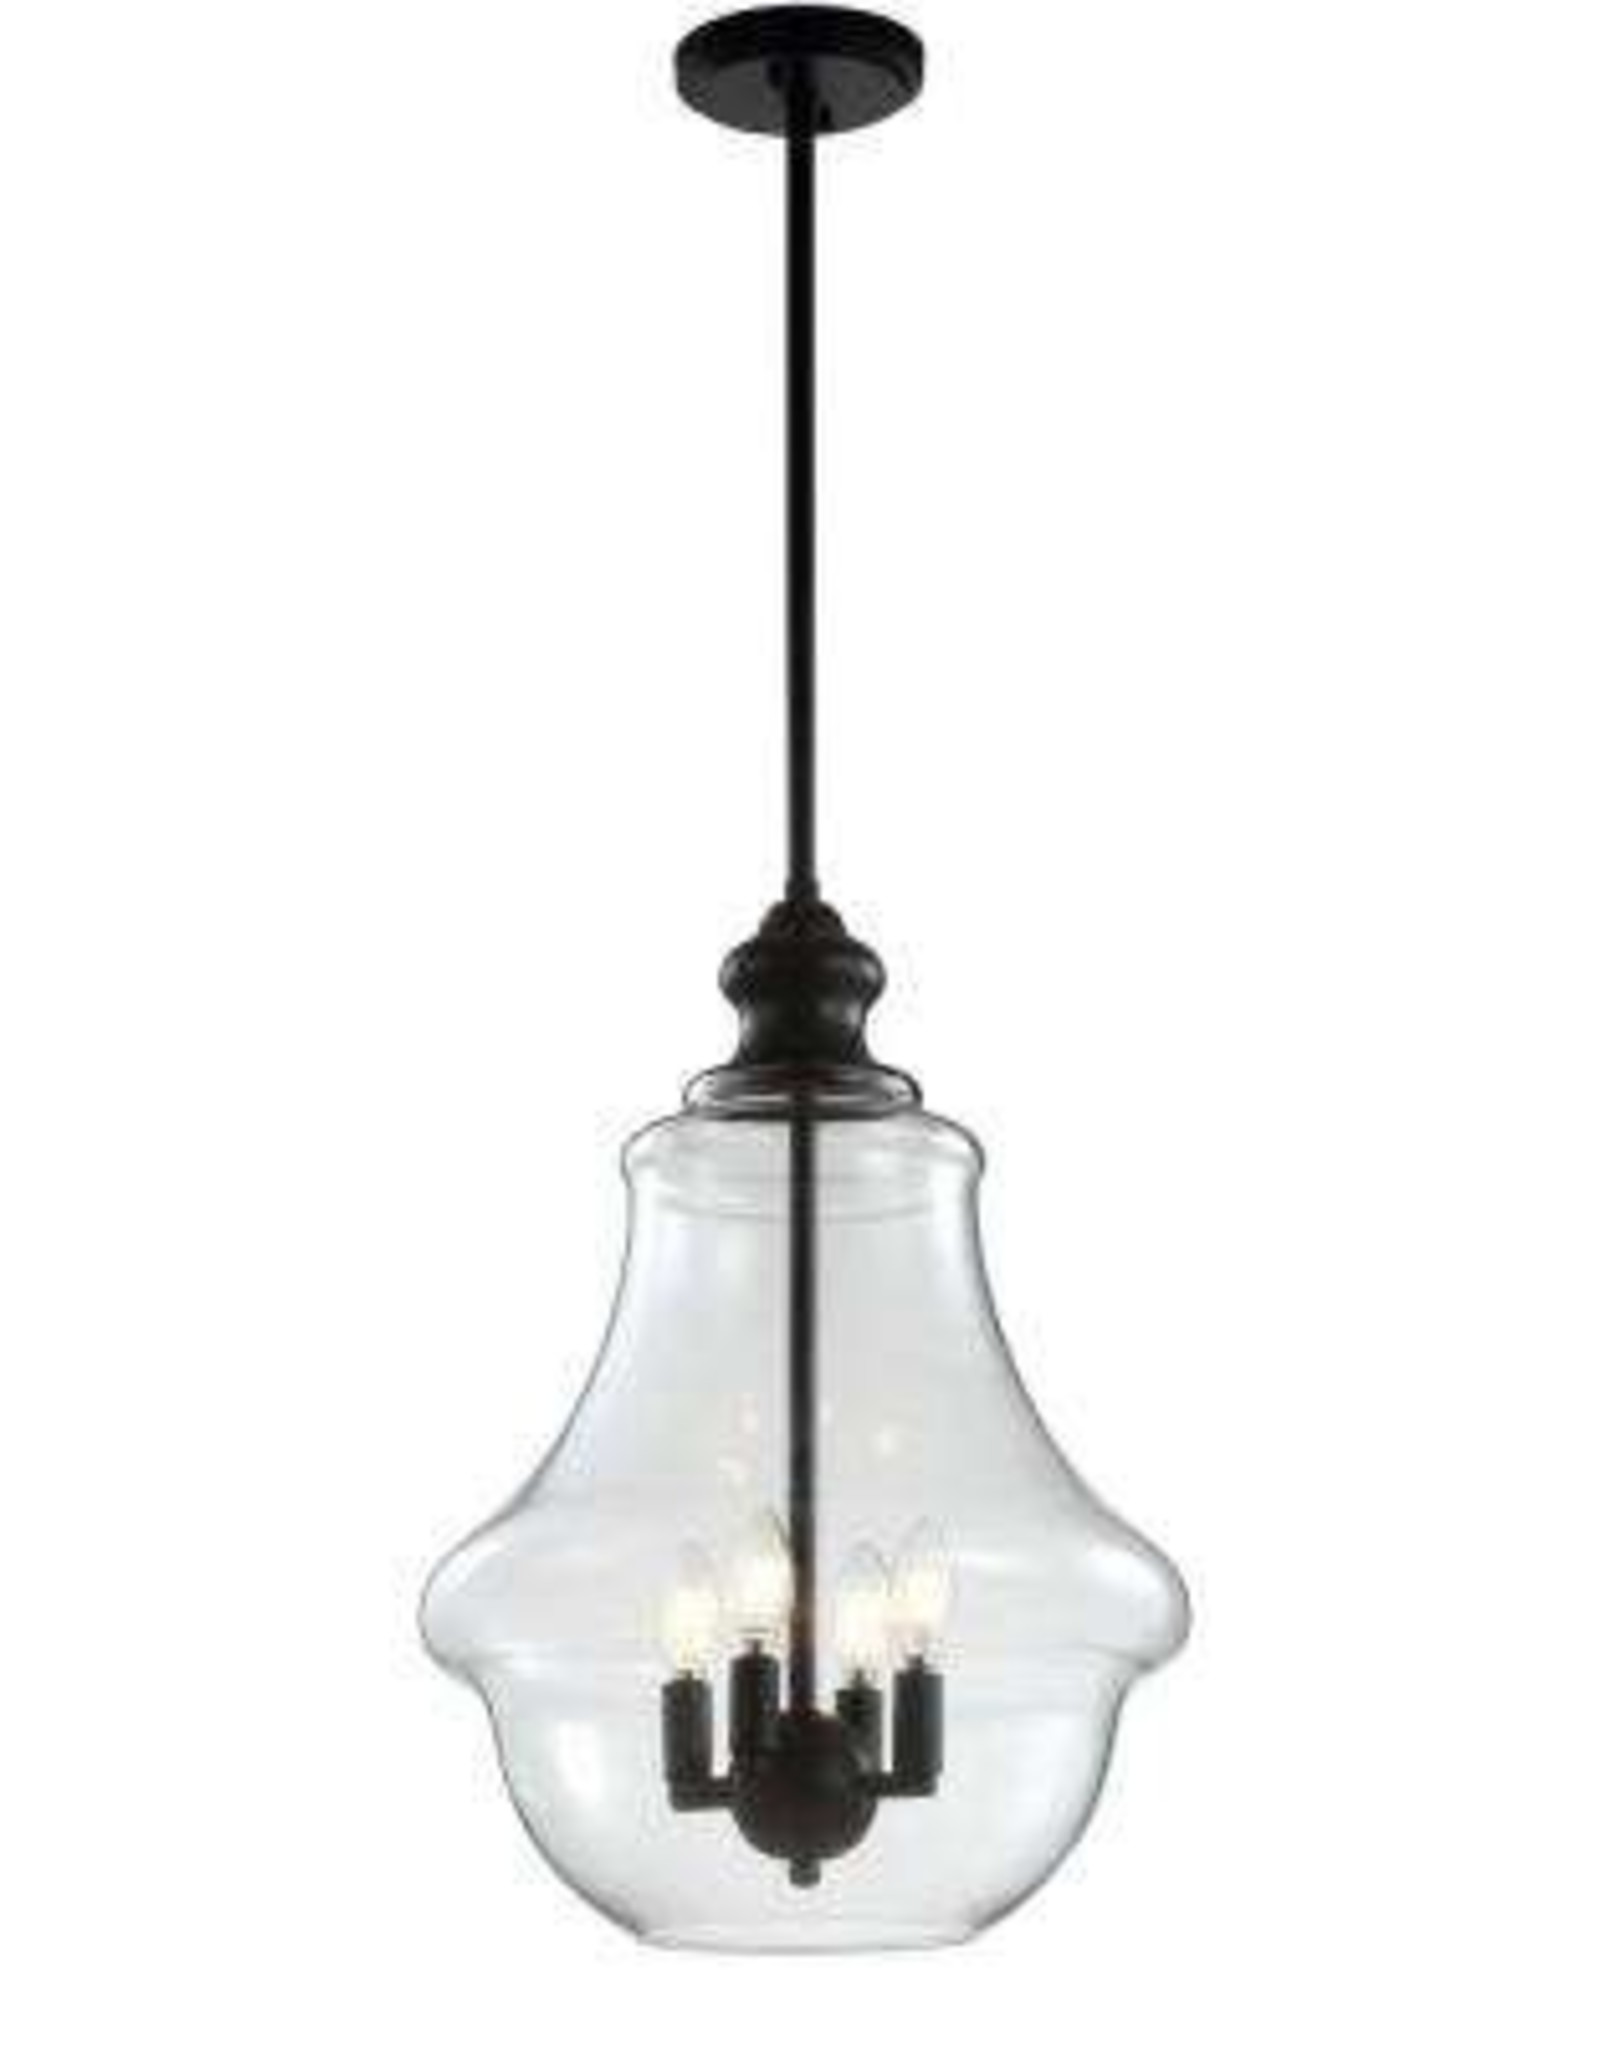 JONATHAN Y Adam 16 in. 4-Light Oil Rubbed Bronze Adjustable Metal/Glass LED Pendant